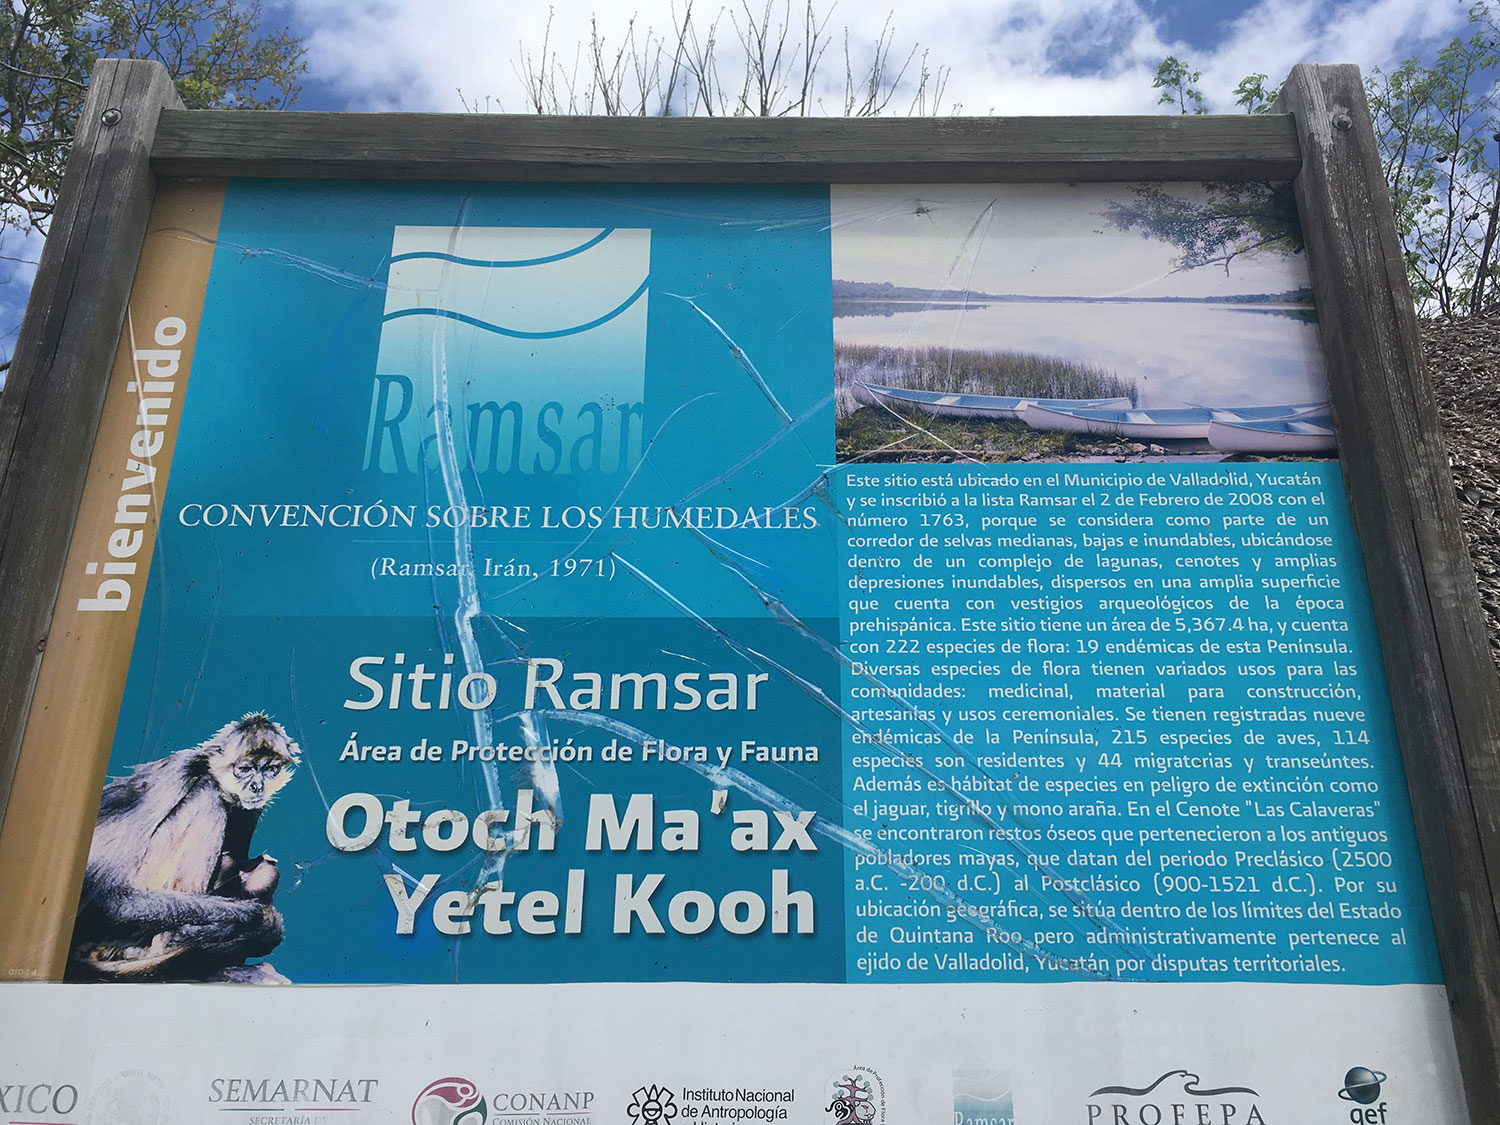 The sign advising that the area is a Ramsar site.